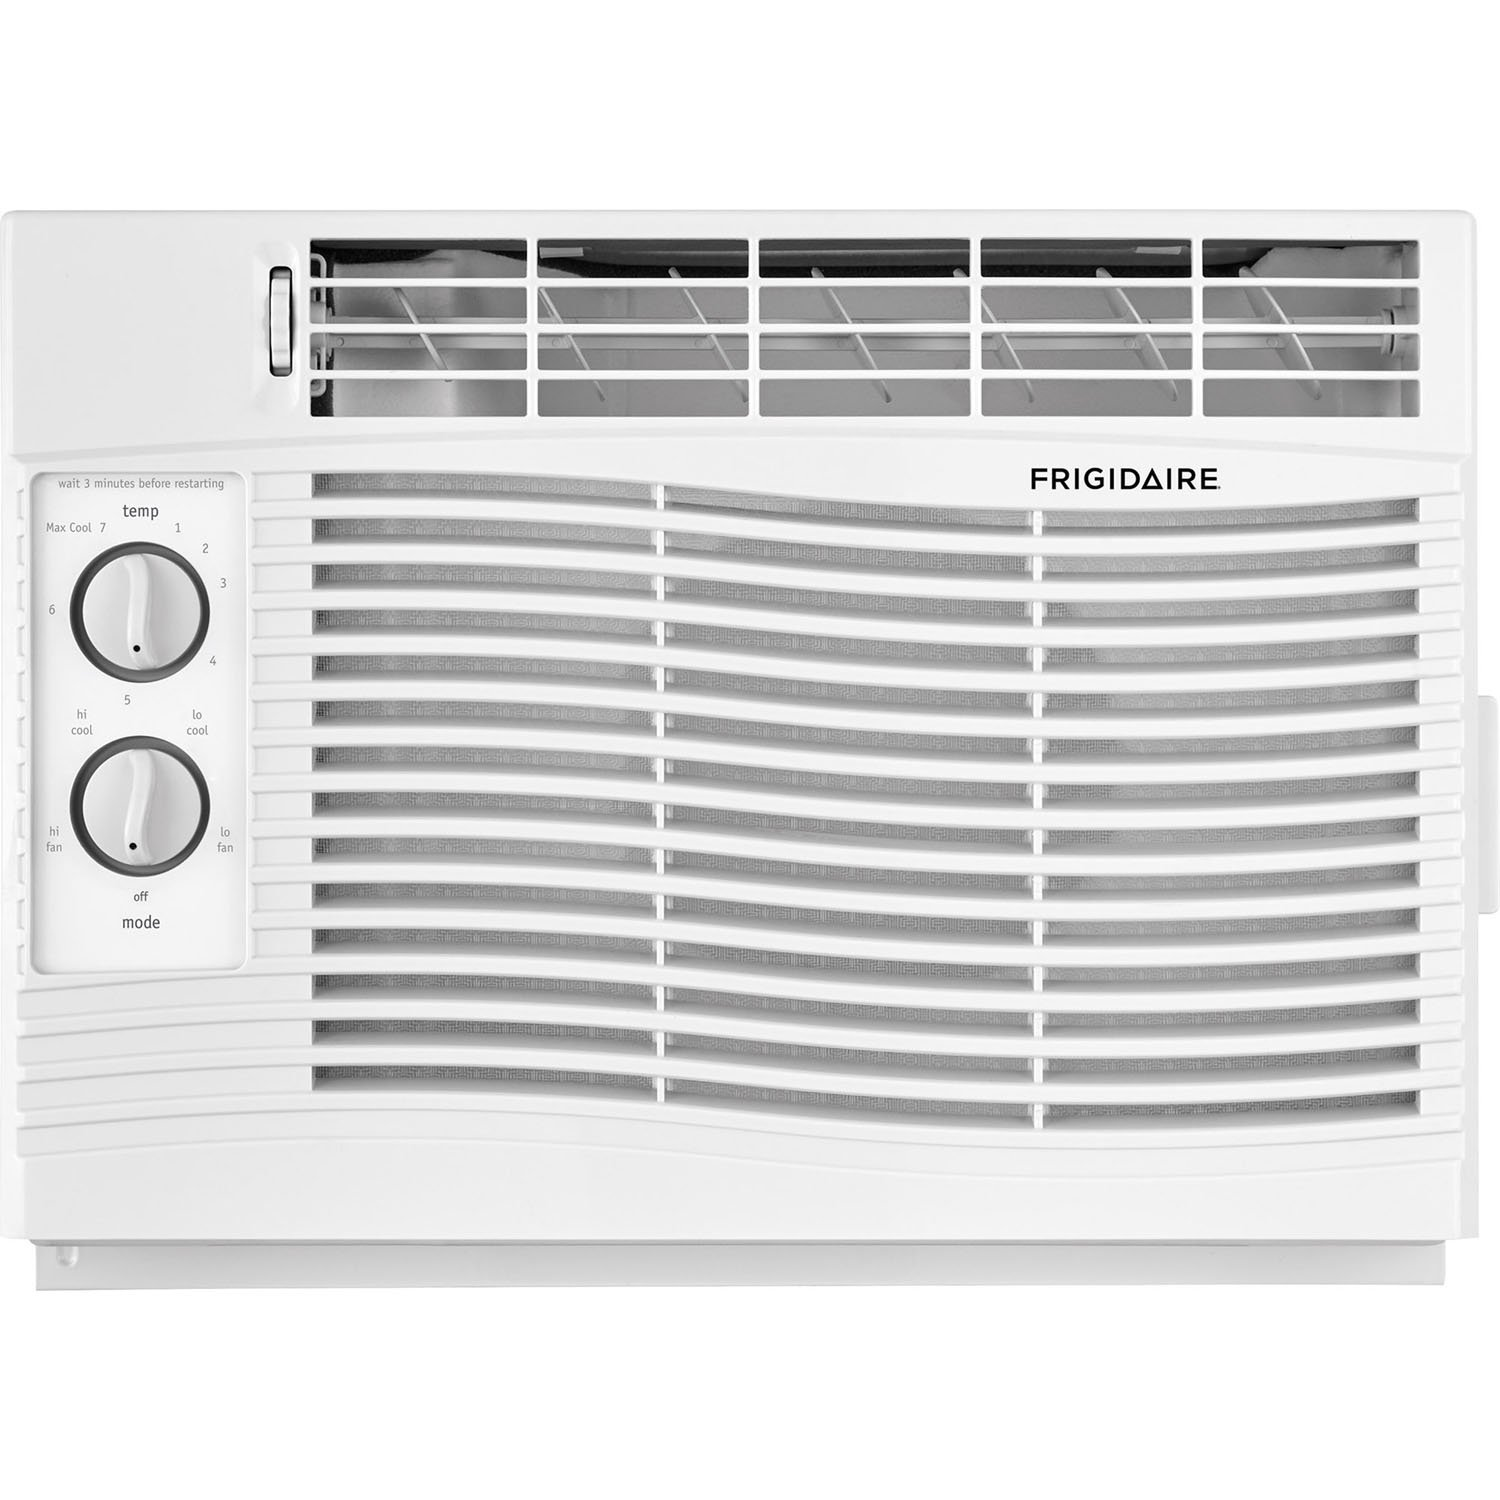 FRIGIDAIRE 5,000 BTU 115V Window-Mounted Mini-Compact Air Conditioner with Mechanical Controls, White, 5000 by FRIGIDAIRE